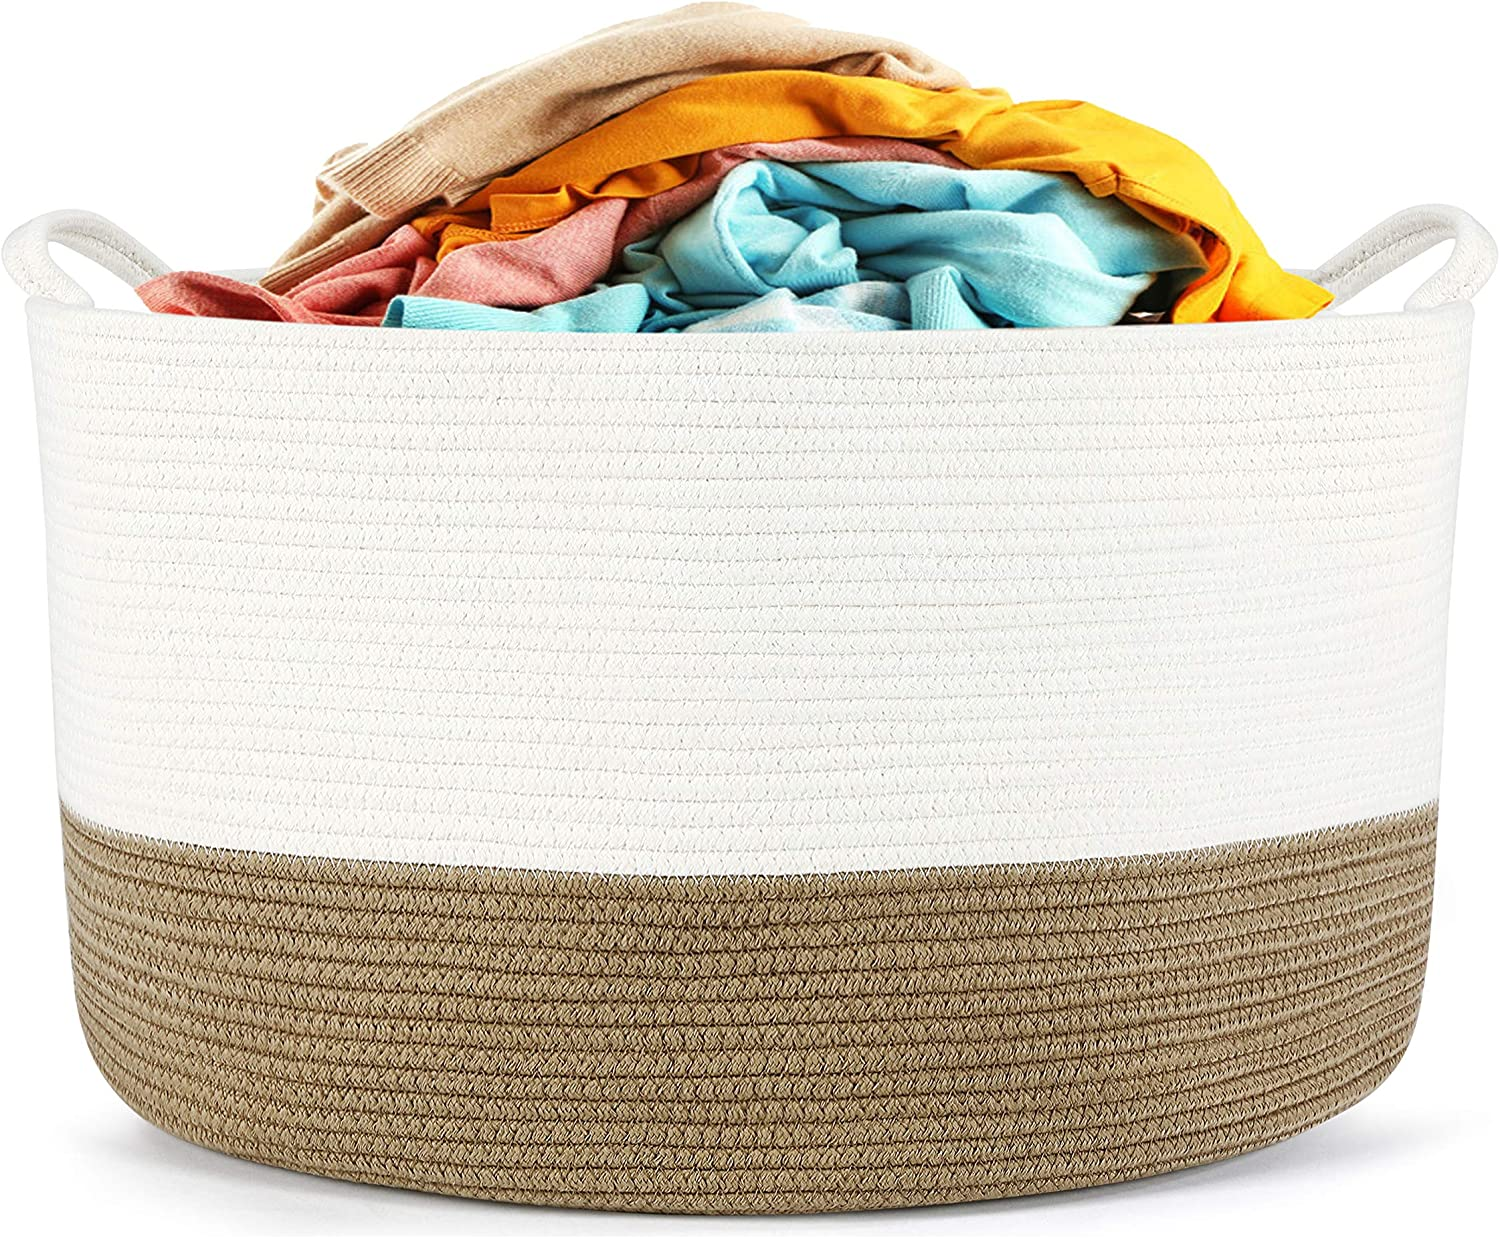 HYNAWIN Cotton Rope Storage Basket Laundry Basket, Decorative Woven Basket for Laundry, 20'' x 13'' (Brown and Off-White )